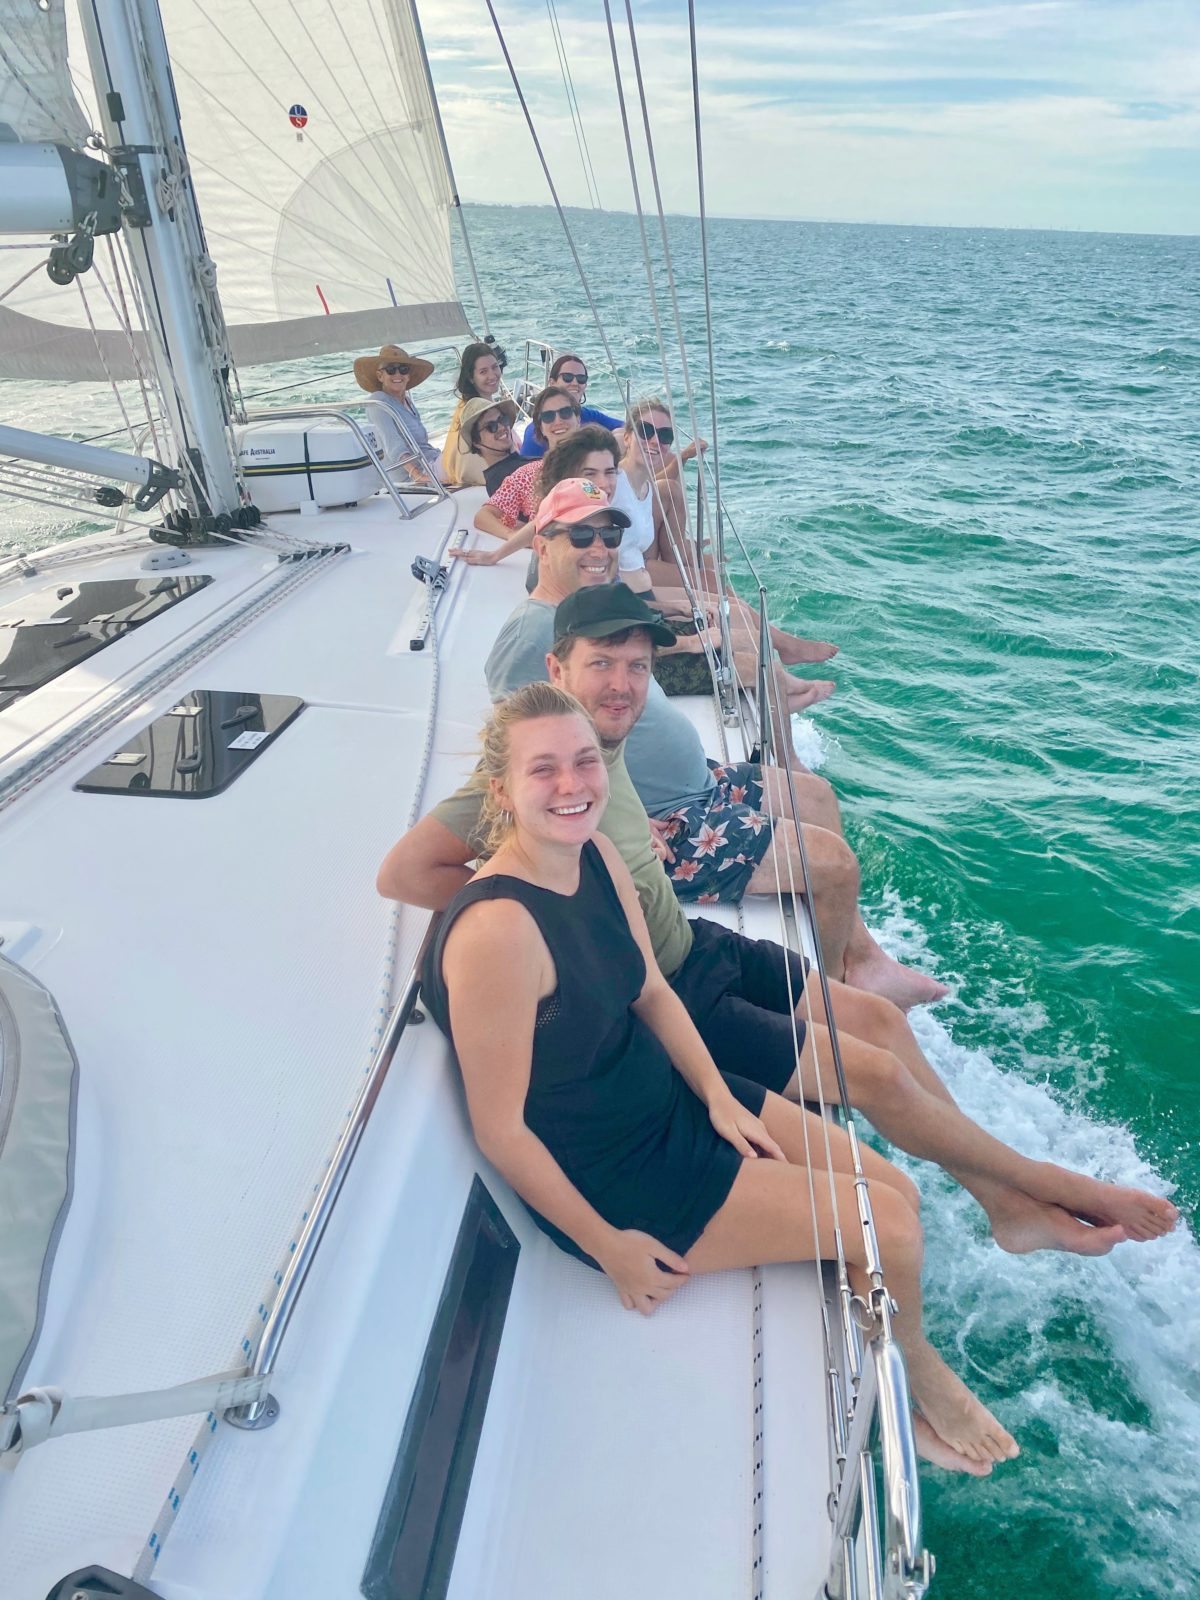 Guests enjoying sitting on the rail while sailing